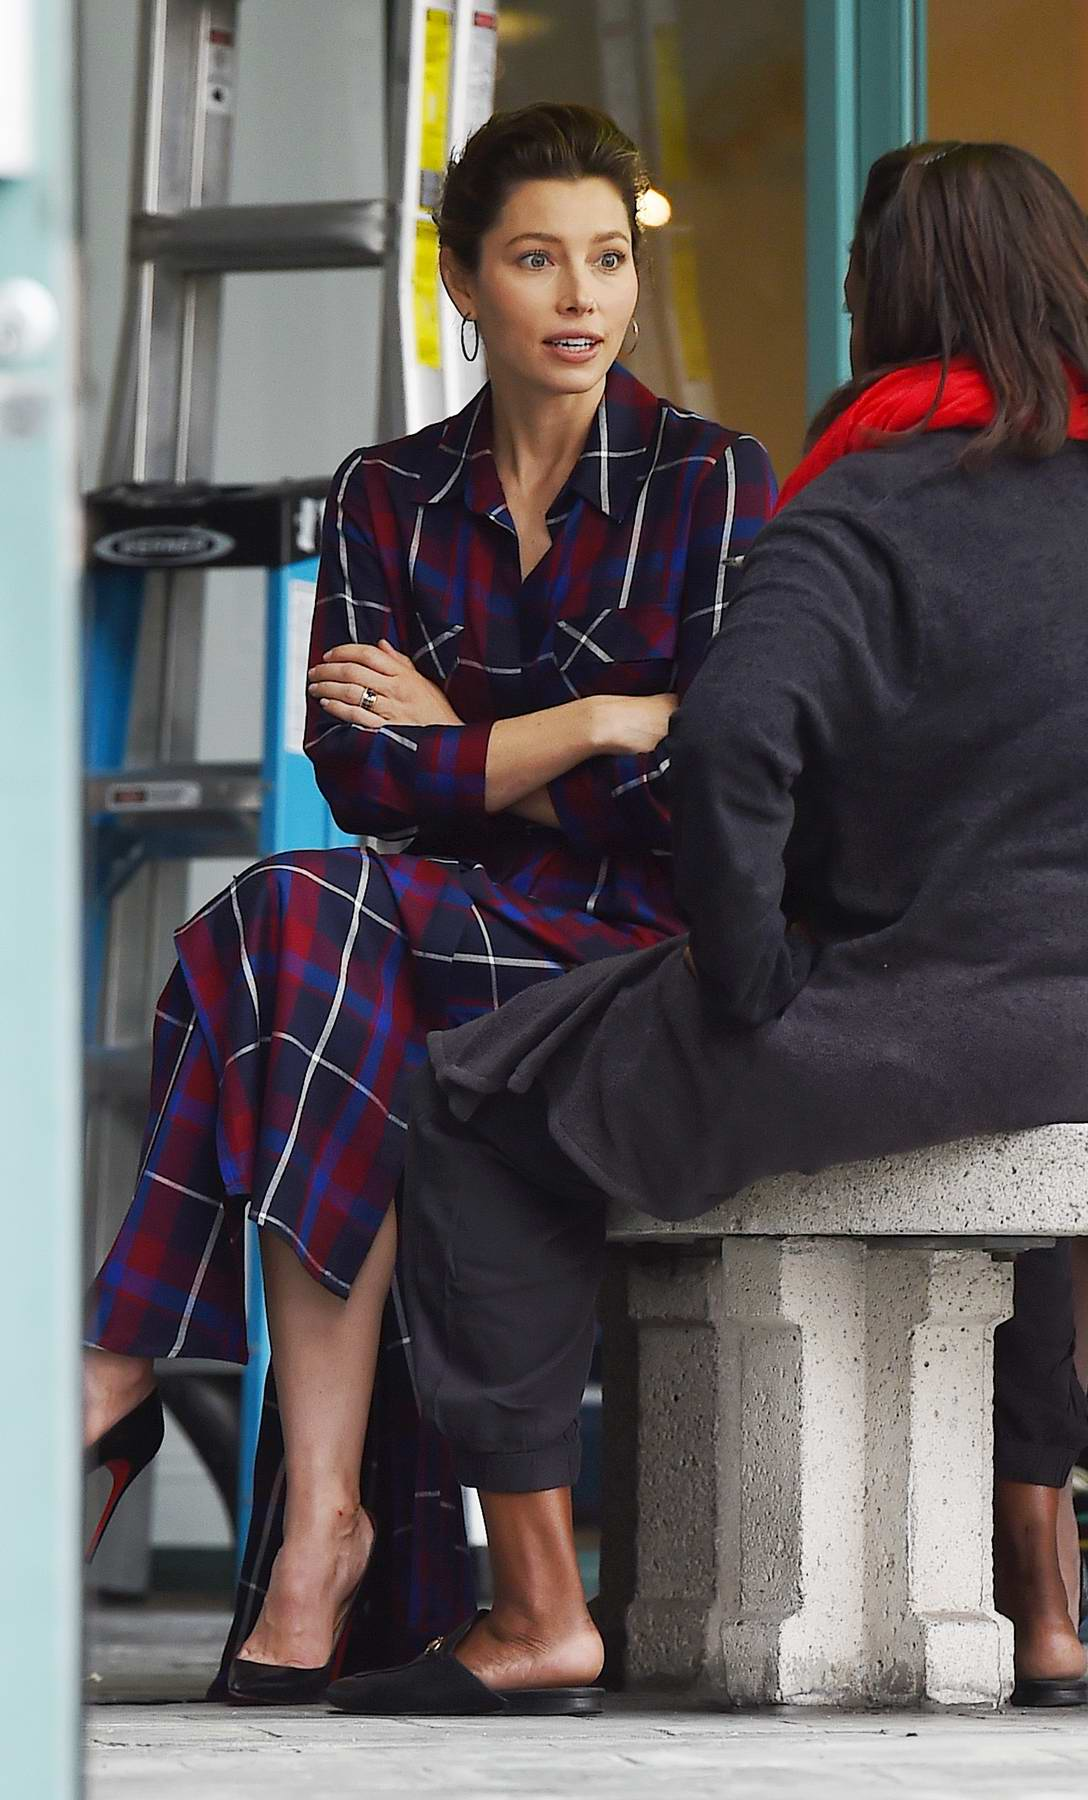 Jessica Biel wears plaid while hosting the launch of her new event space in West Hollywood, Los Angeles